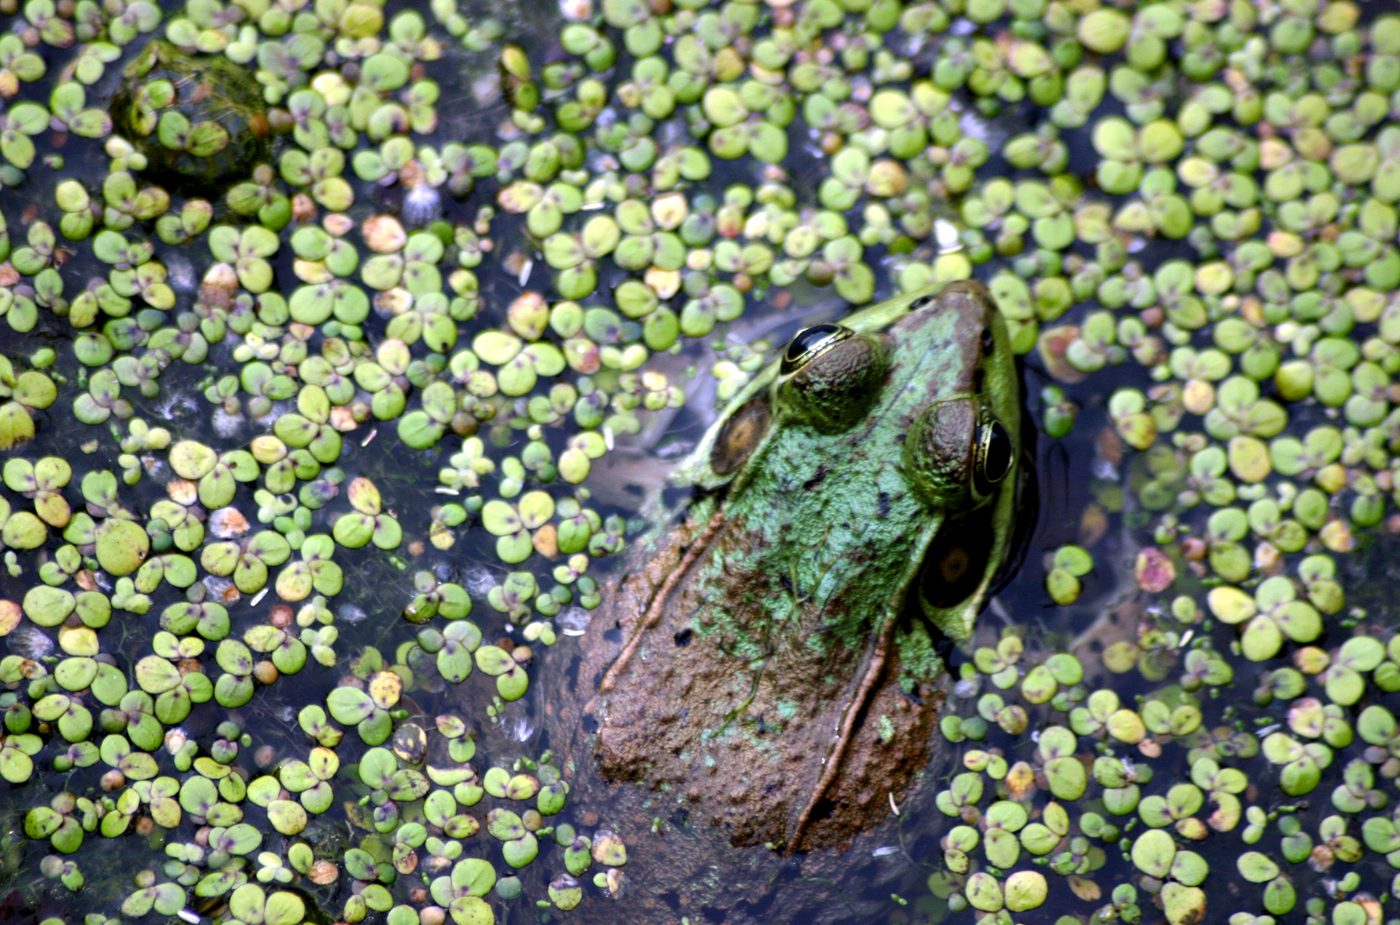 Frog in pond: Macaulay sponsors the iNaturalist City Nature Challenge